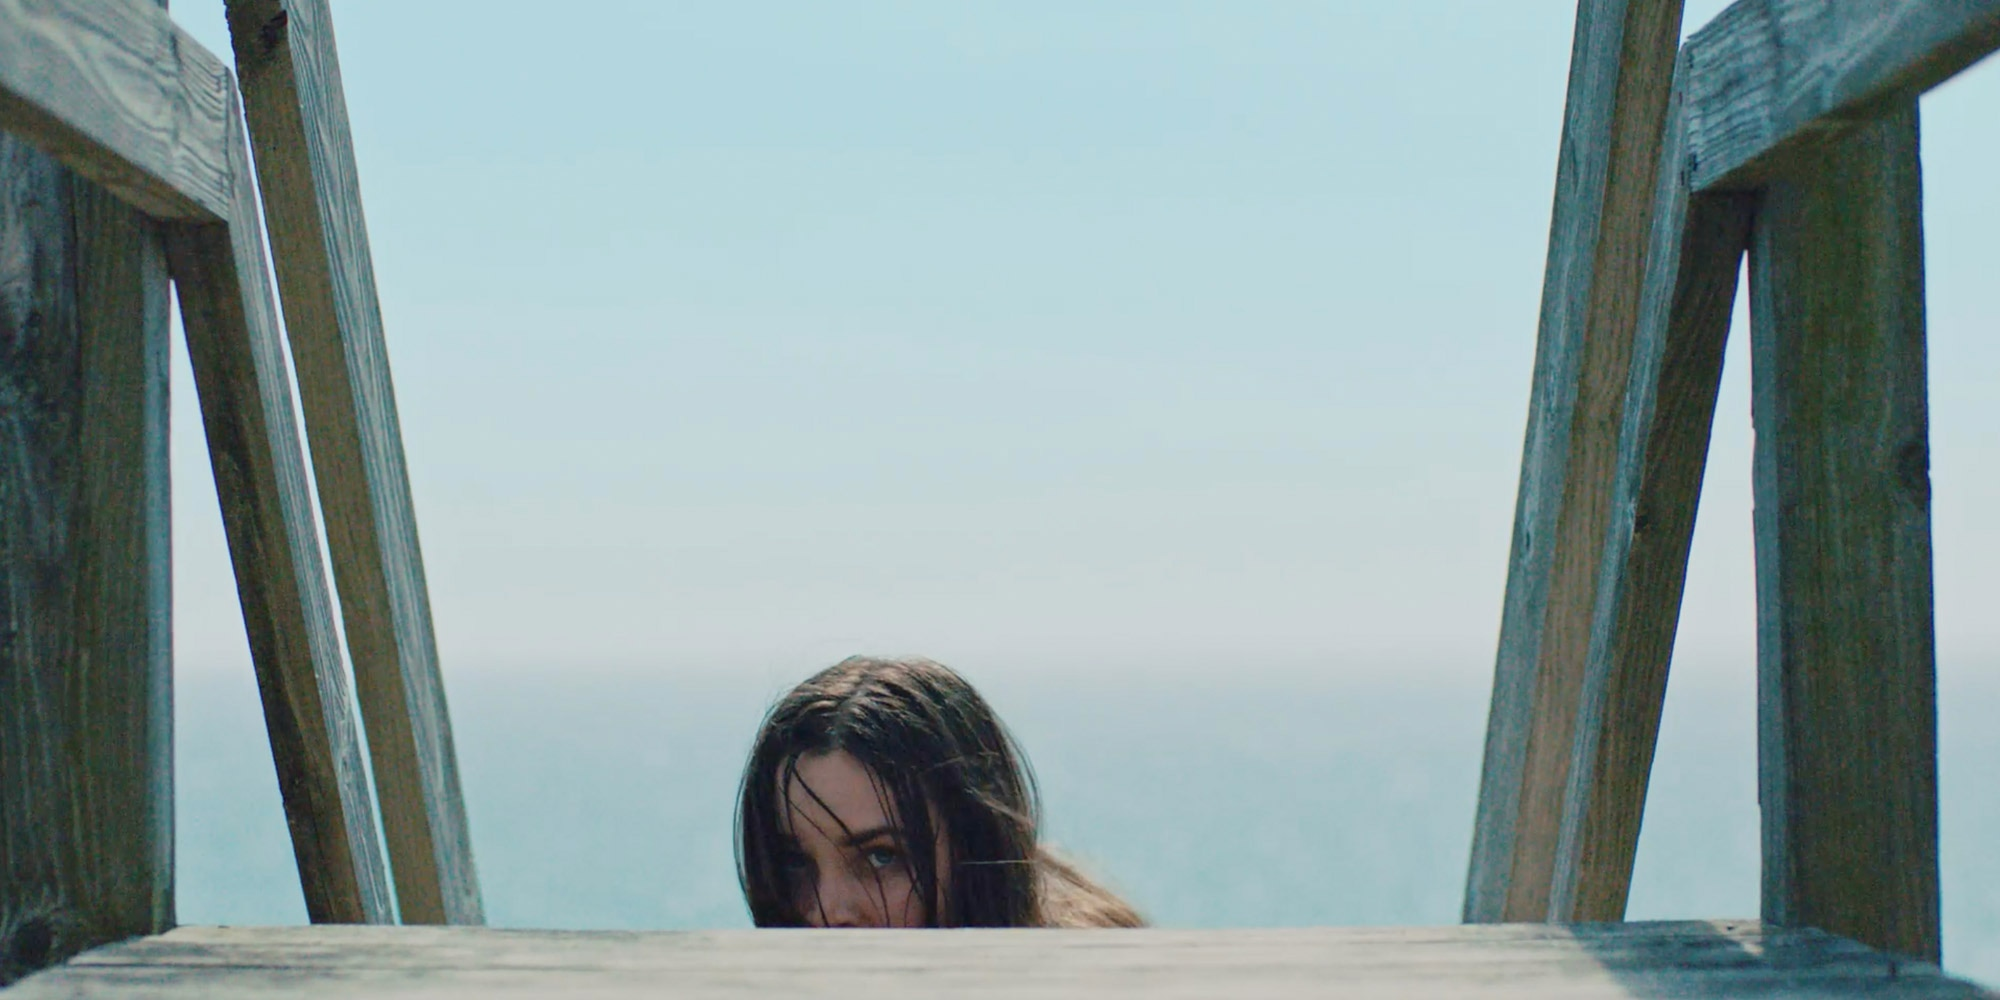 TheBeachHouse - A Day at the Beach Turns into a Waking Nightmare in THE BEACH HOUSE, Acquired by Shudder